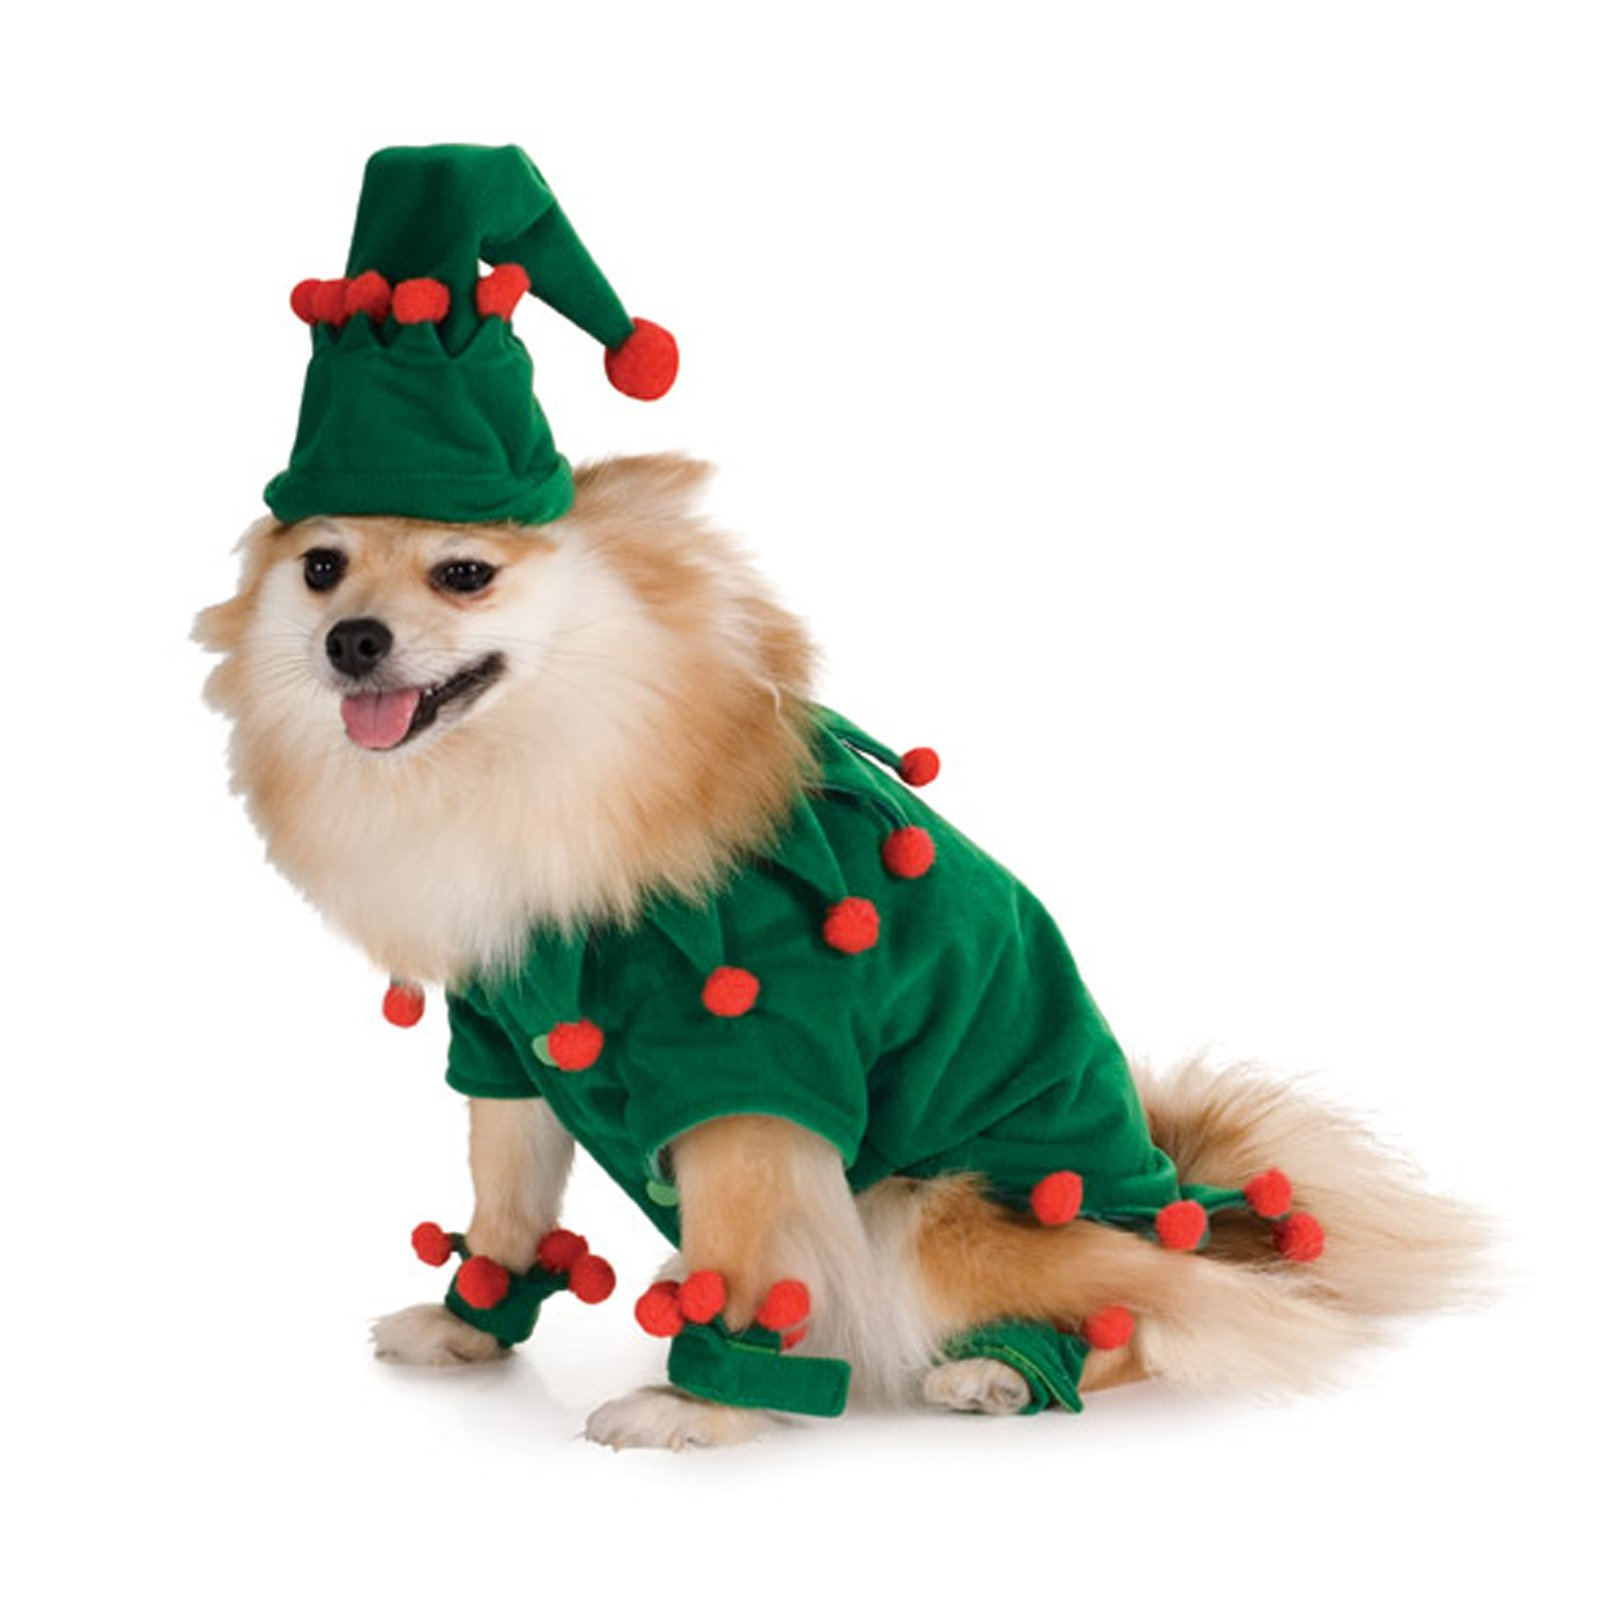 Christmas Pet Costumes photo - 1